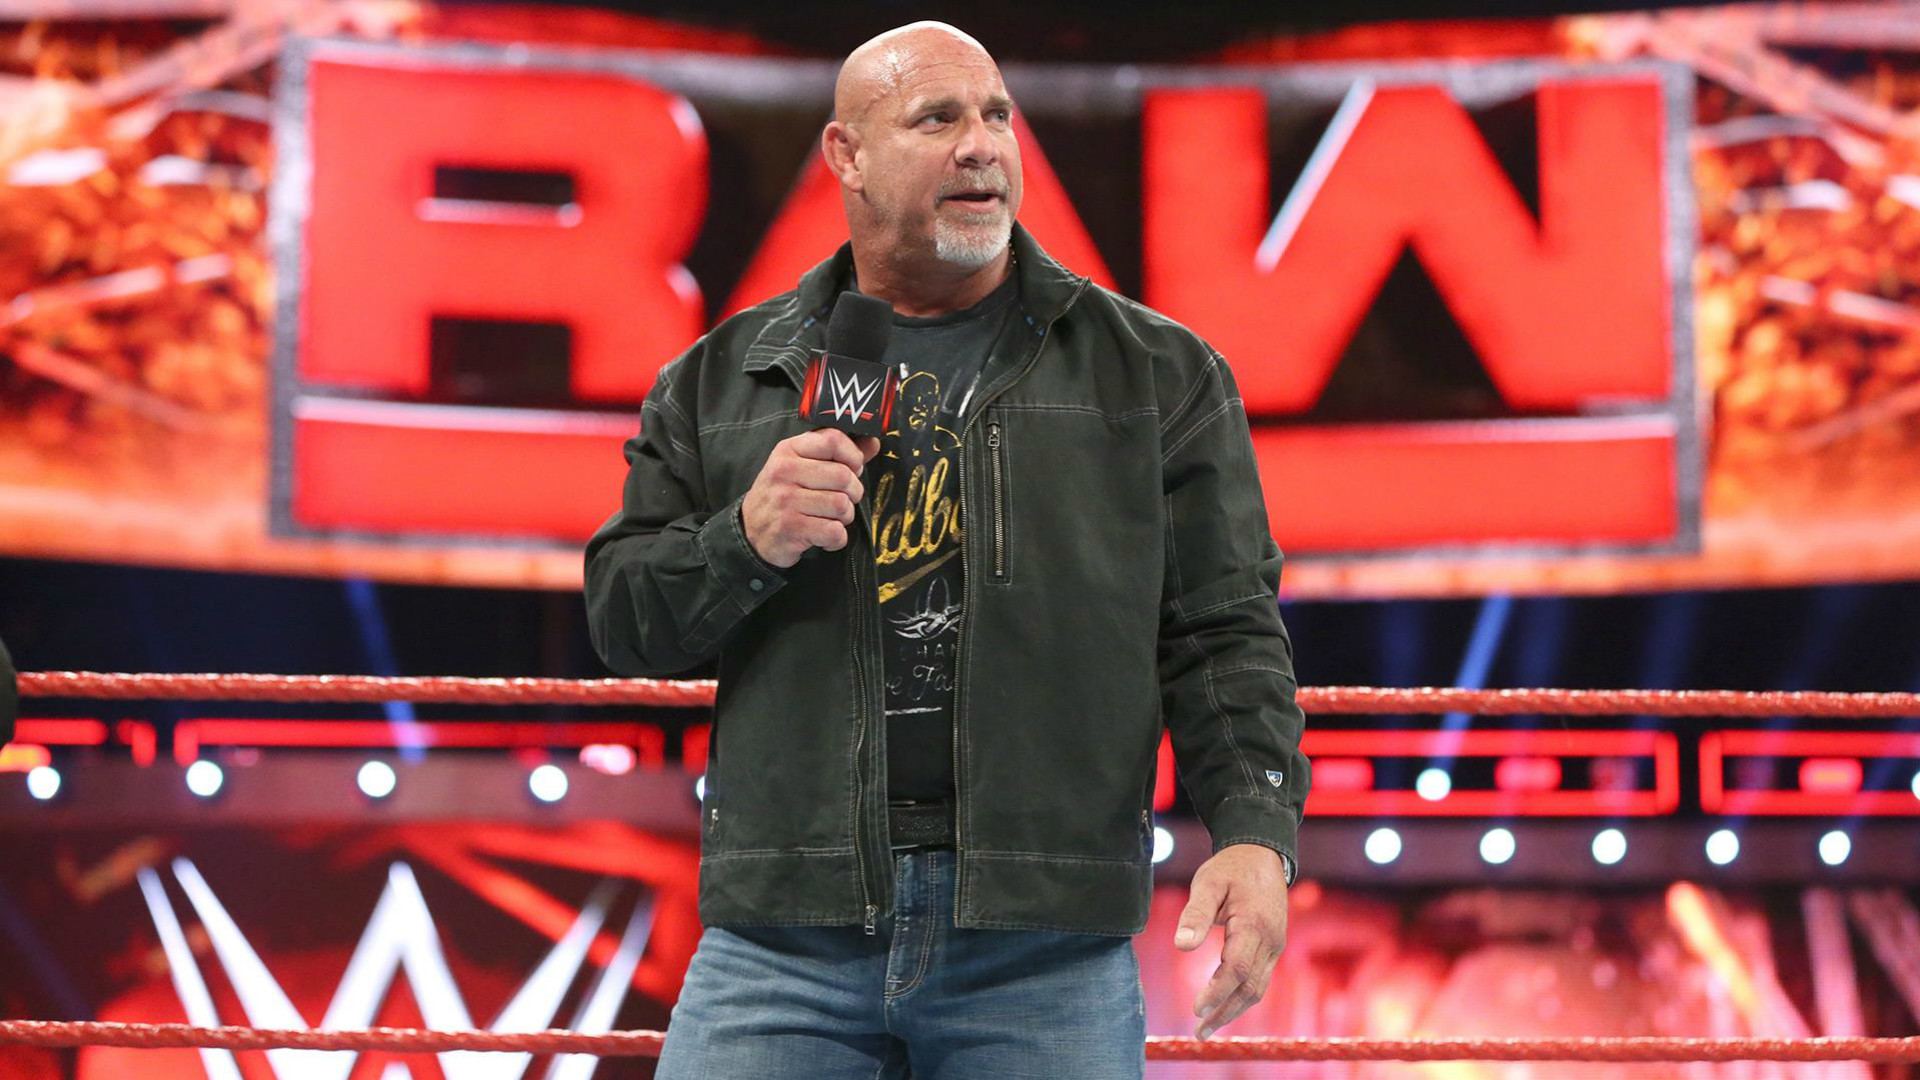 1920x1080 Having conquered The Conqueror, Brock Lesnar, at Survivor Series, Goldberg  has announced that